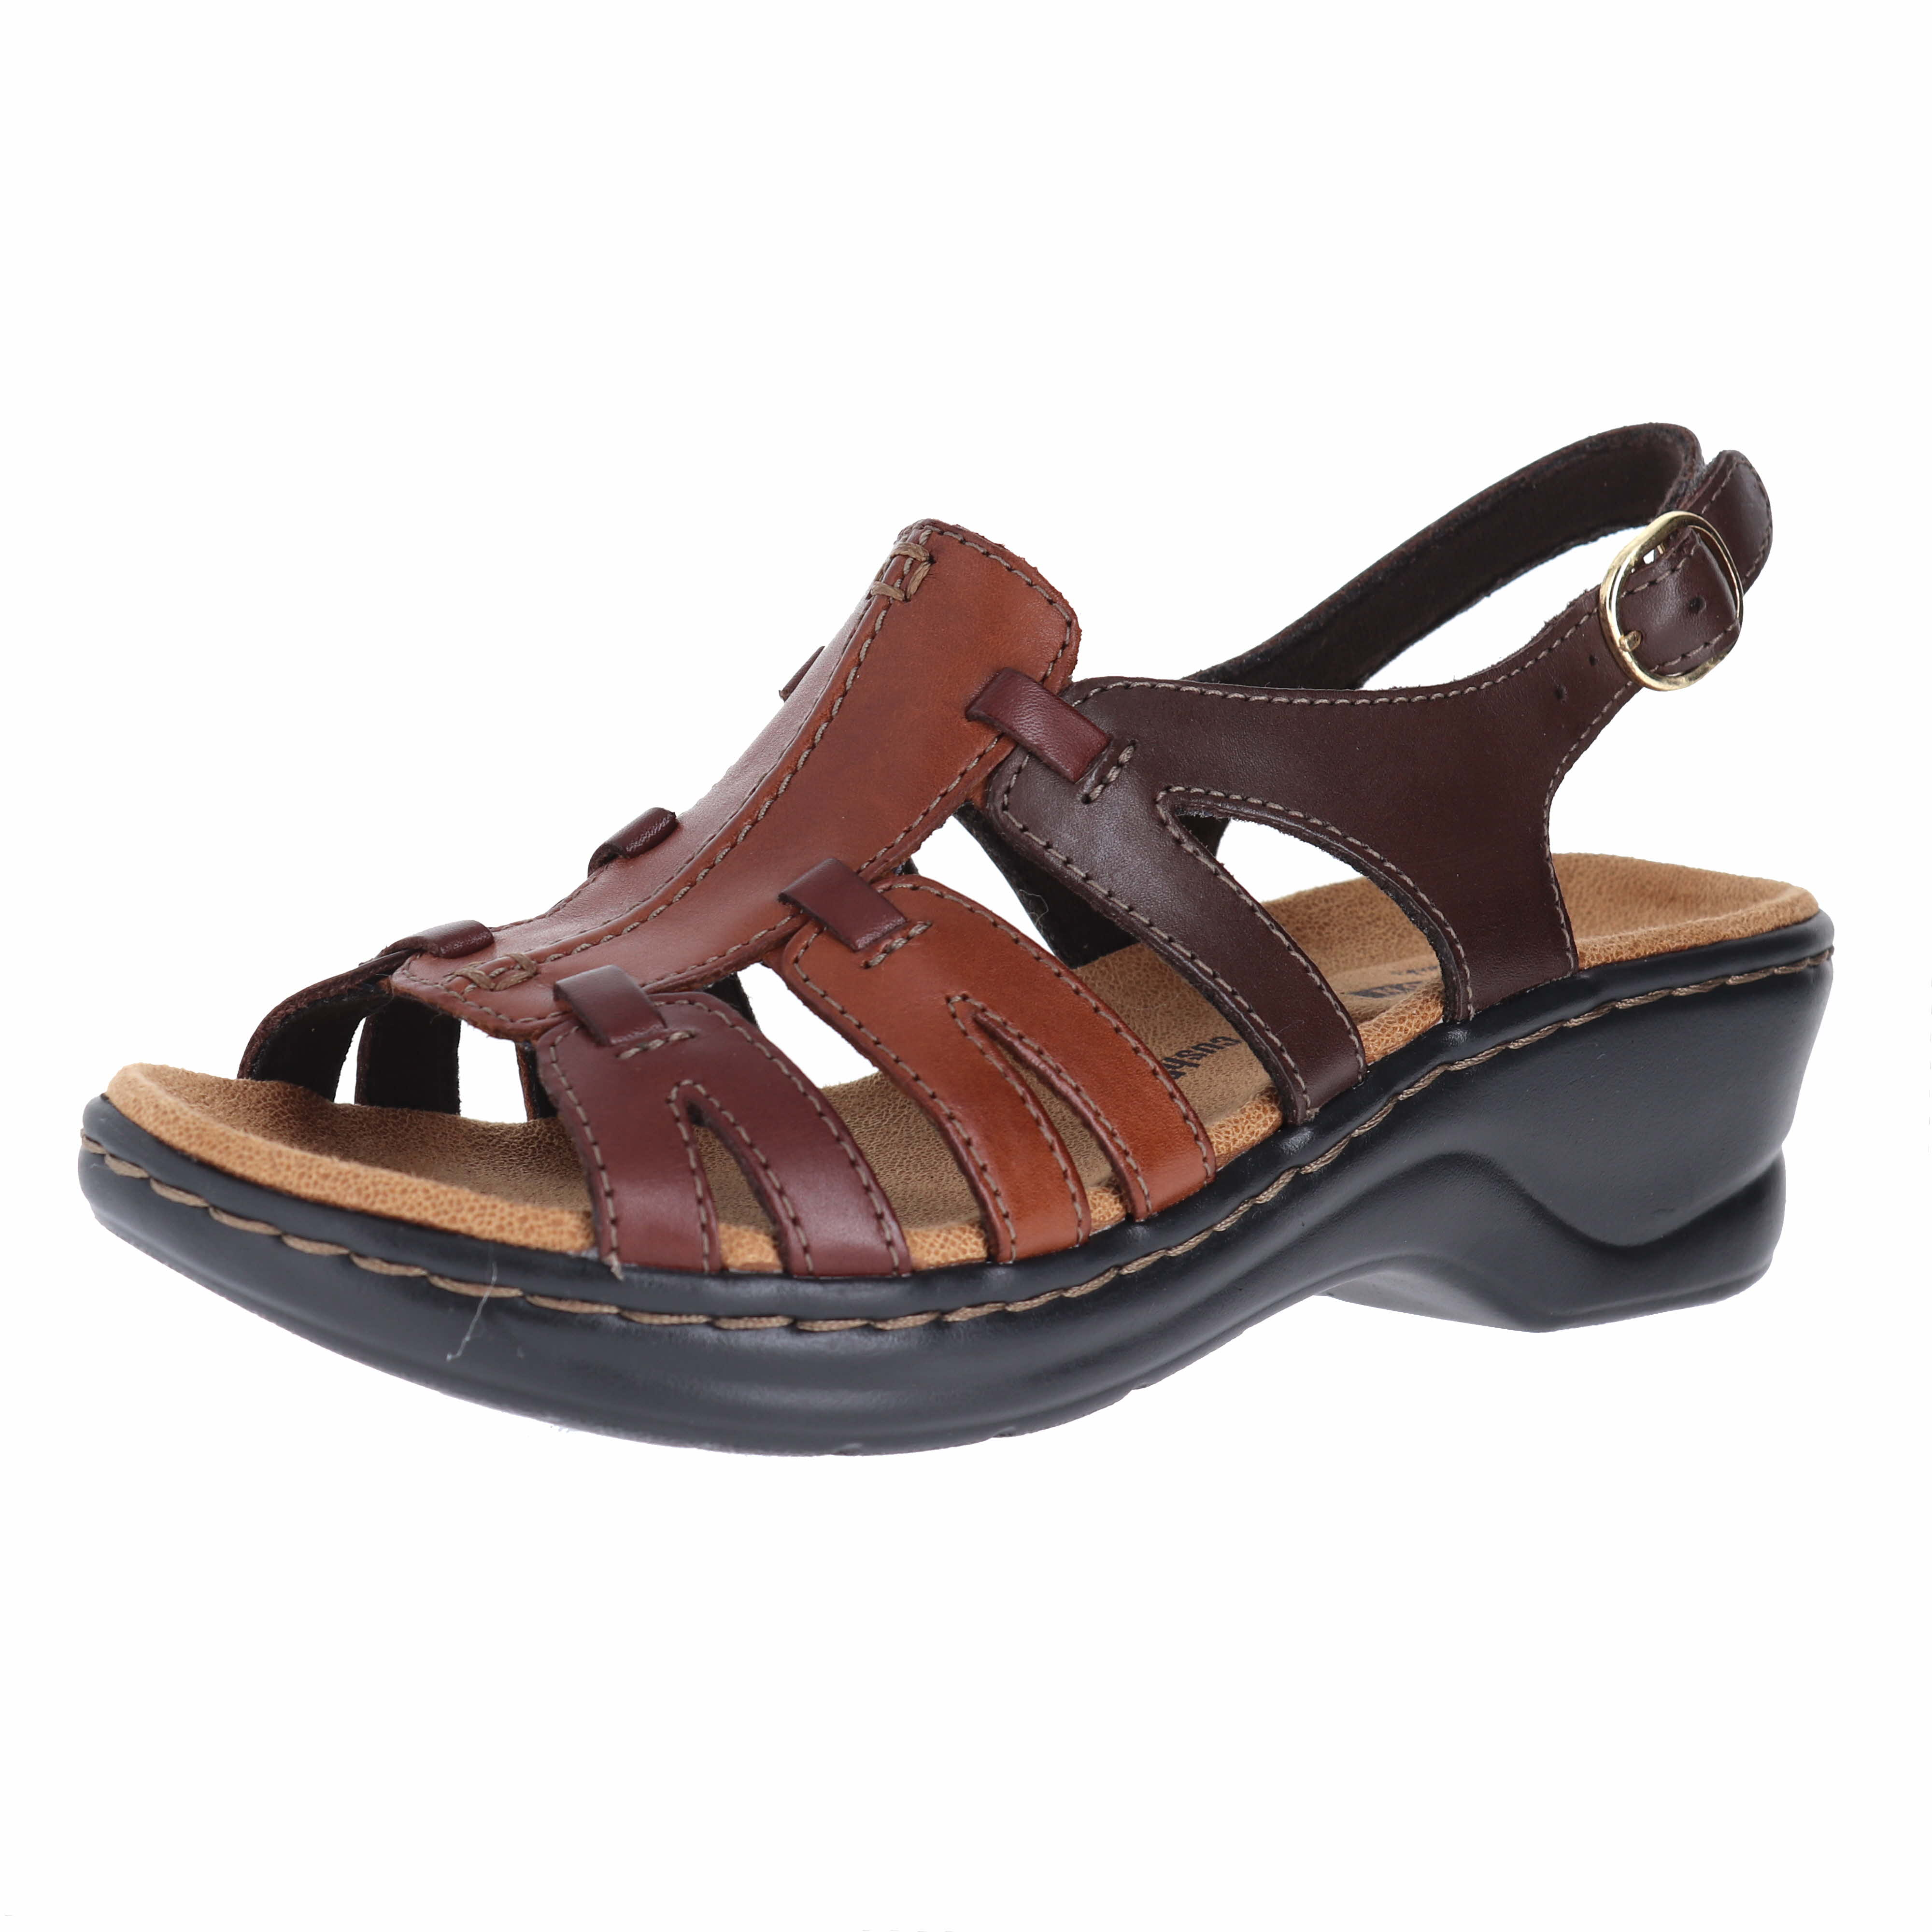 7f84c2ec6e4d Brand  Clarks. Model  LEXI MARIGOLD. Style  SANDALS ANKLE STRAP. Gender   WOMENS